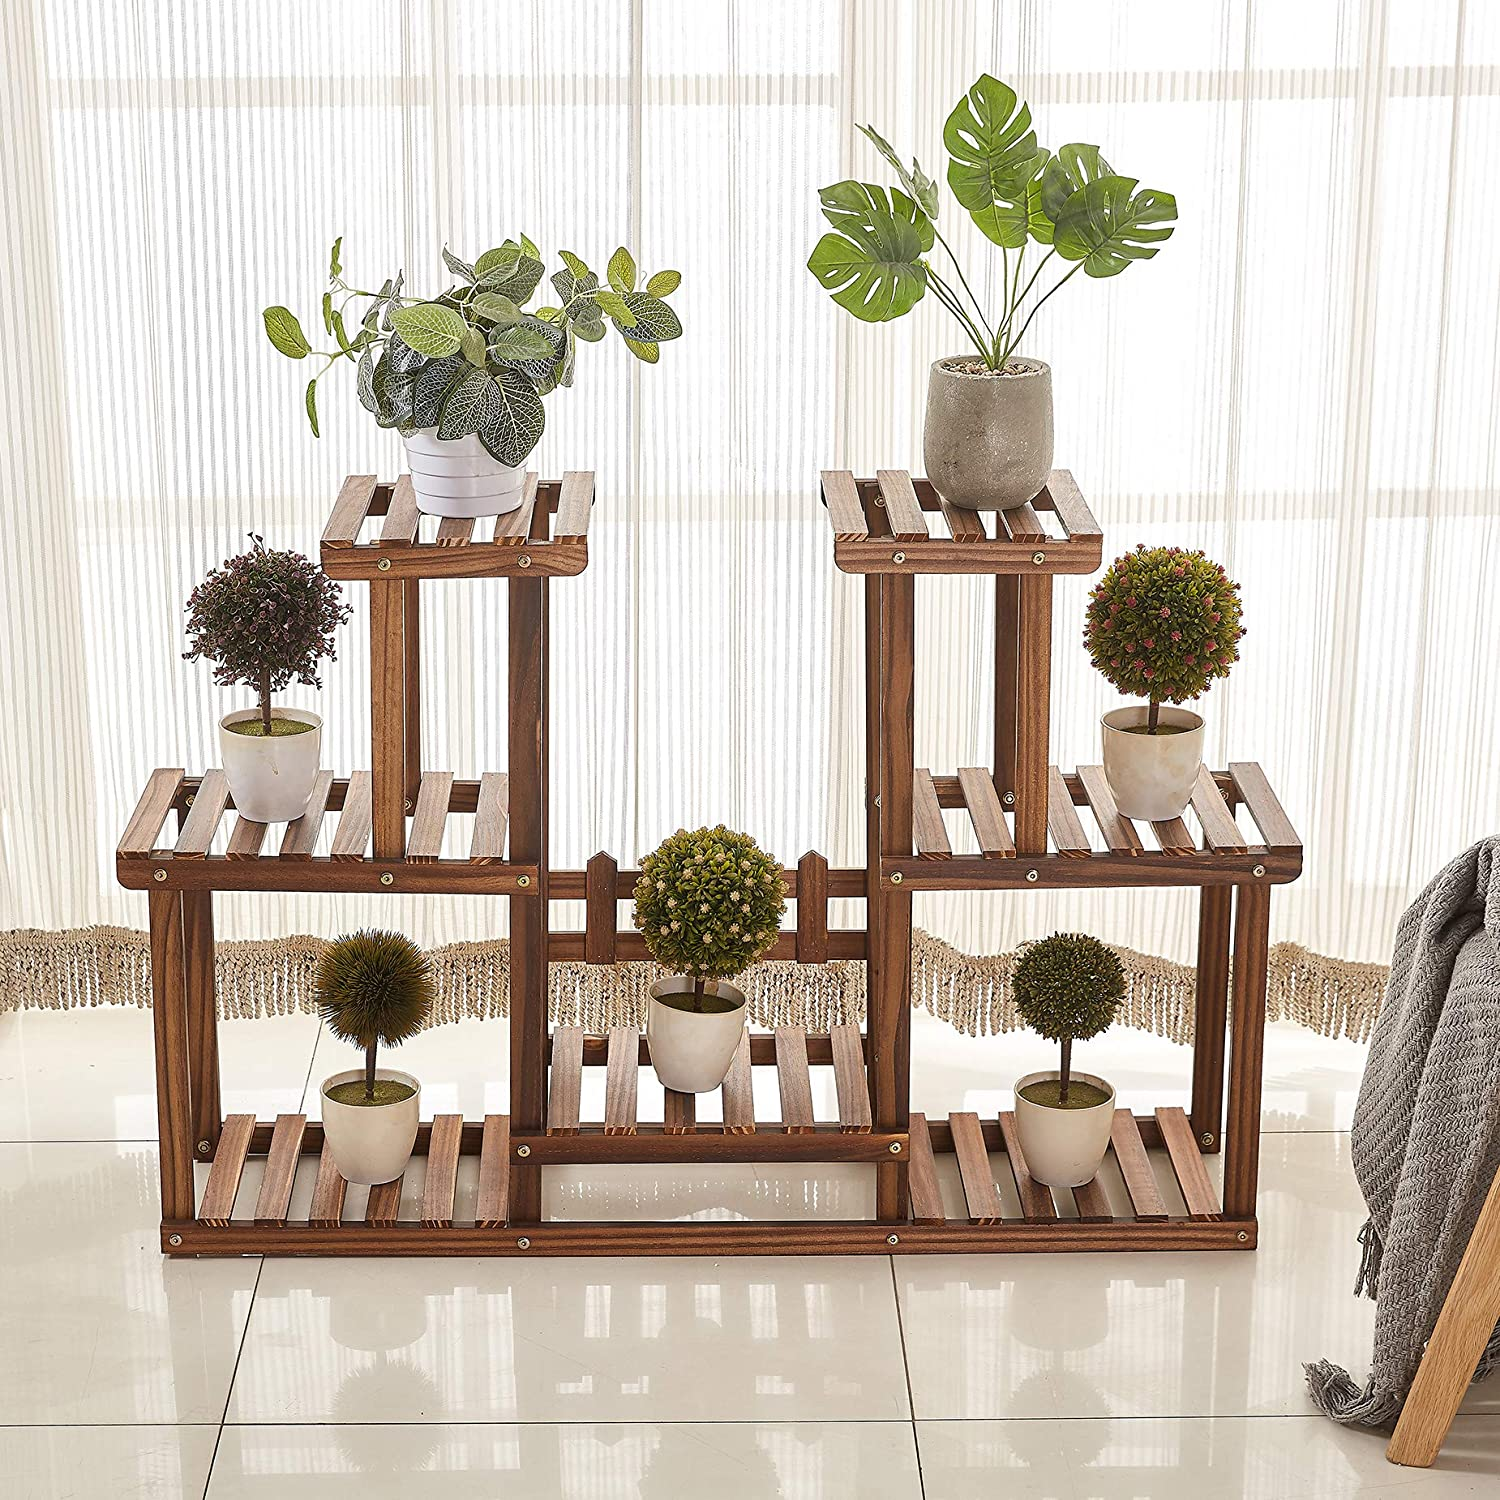 Antirust Screws Plant Stands Plant Shelf Outdoor Plant Stand Overall Size: 43/×24 Inch Rose Home Fashion Solid Pine Wood Plant Stand Plant Stands Indoor